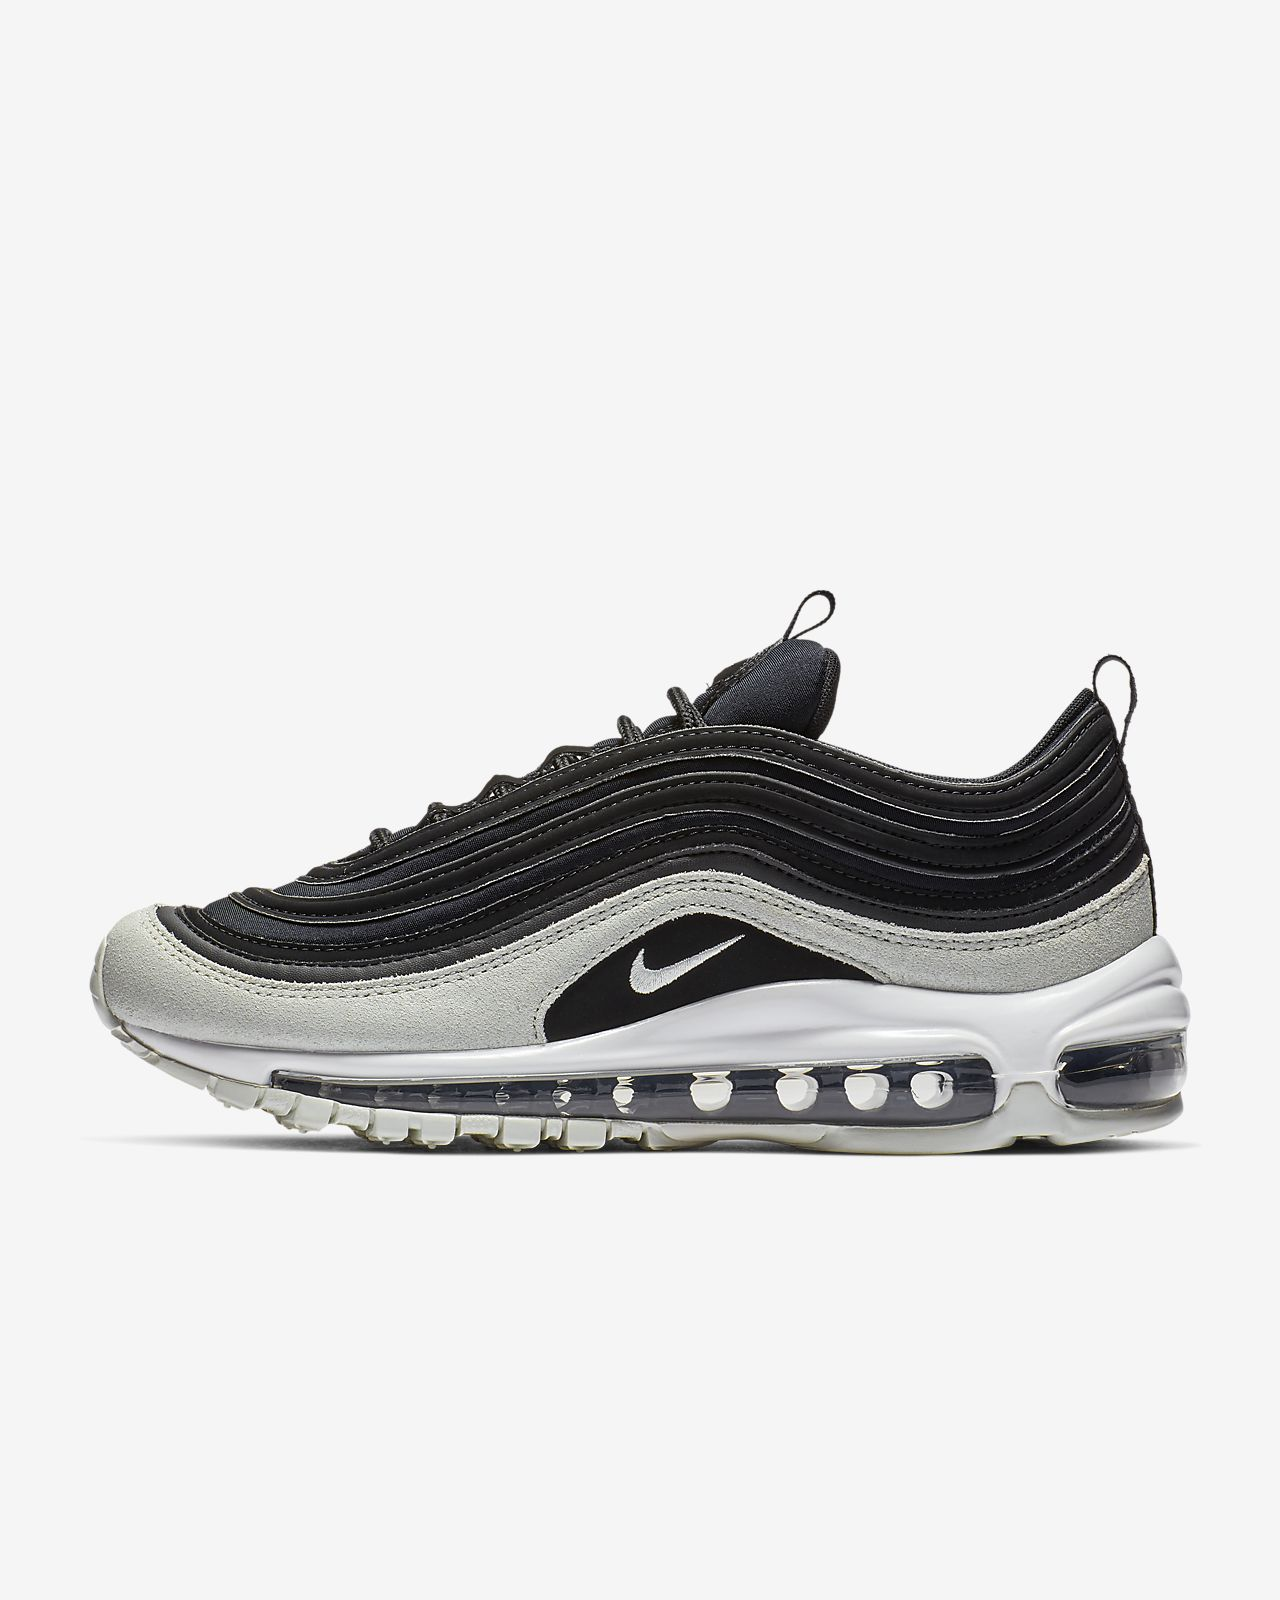 Nike Air Max 97 Premium Women's Shoe